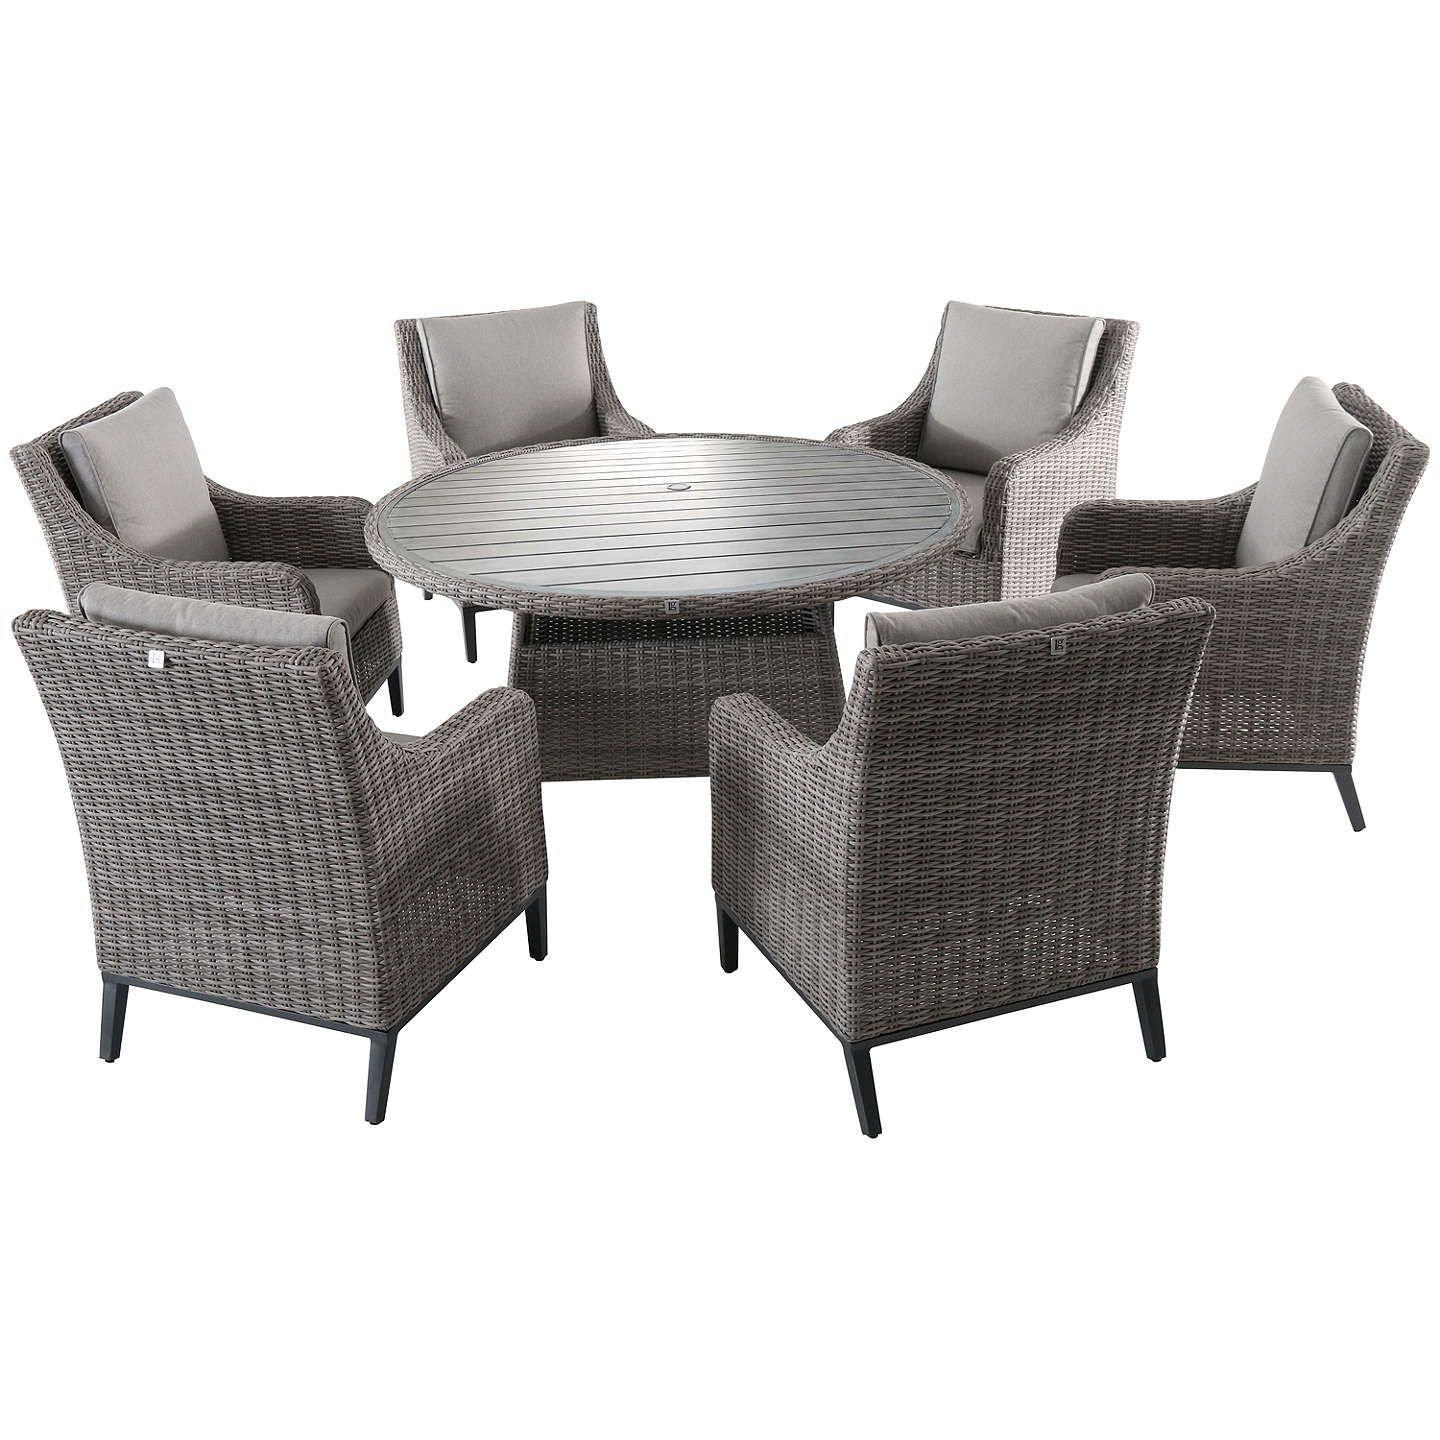 Fine Lg Outdoor Copenhagen 6 Seater Garden Dining Table And Onthecornerstone Fun Painted Chair Ideas Images Onthecornerstoneorg